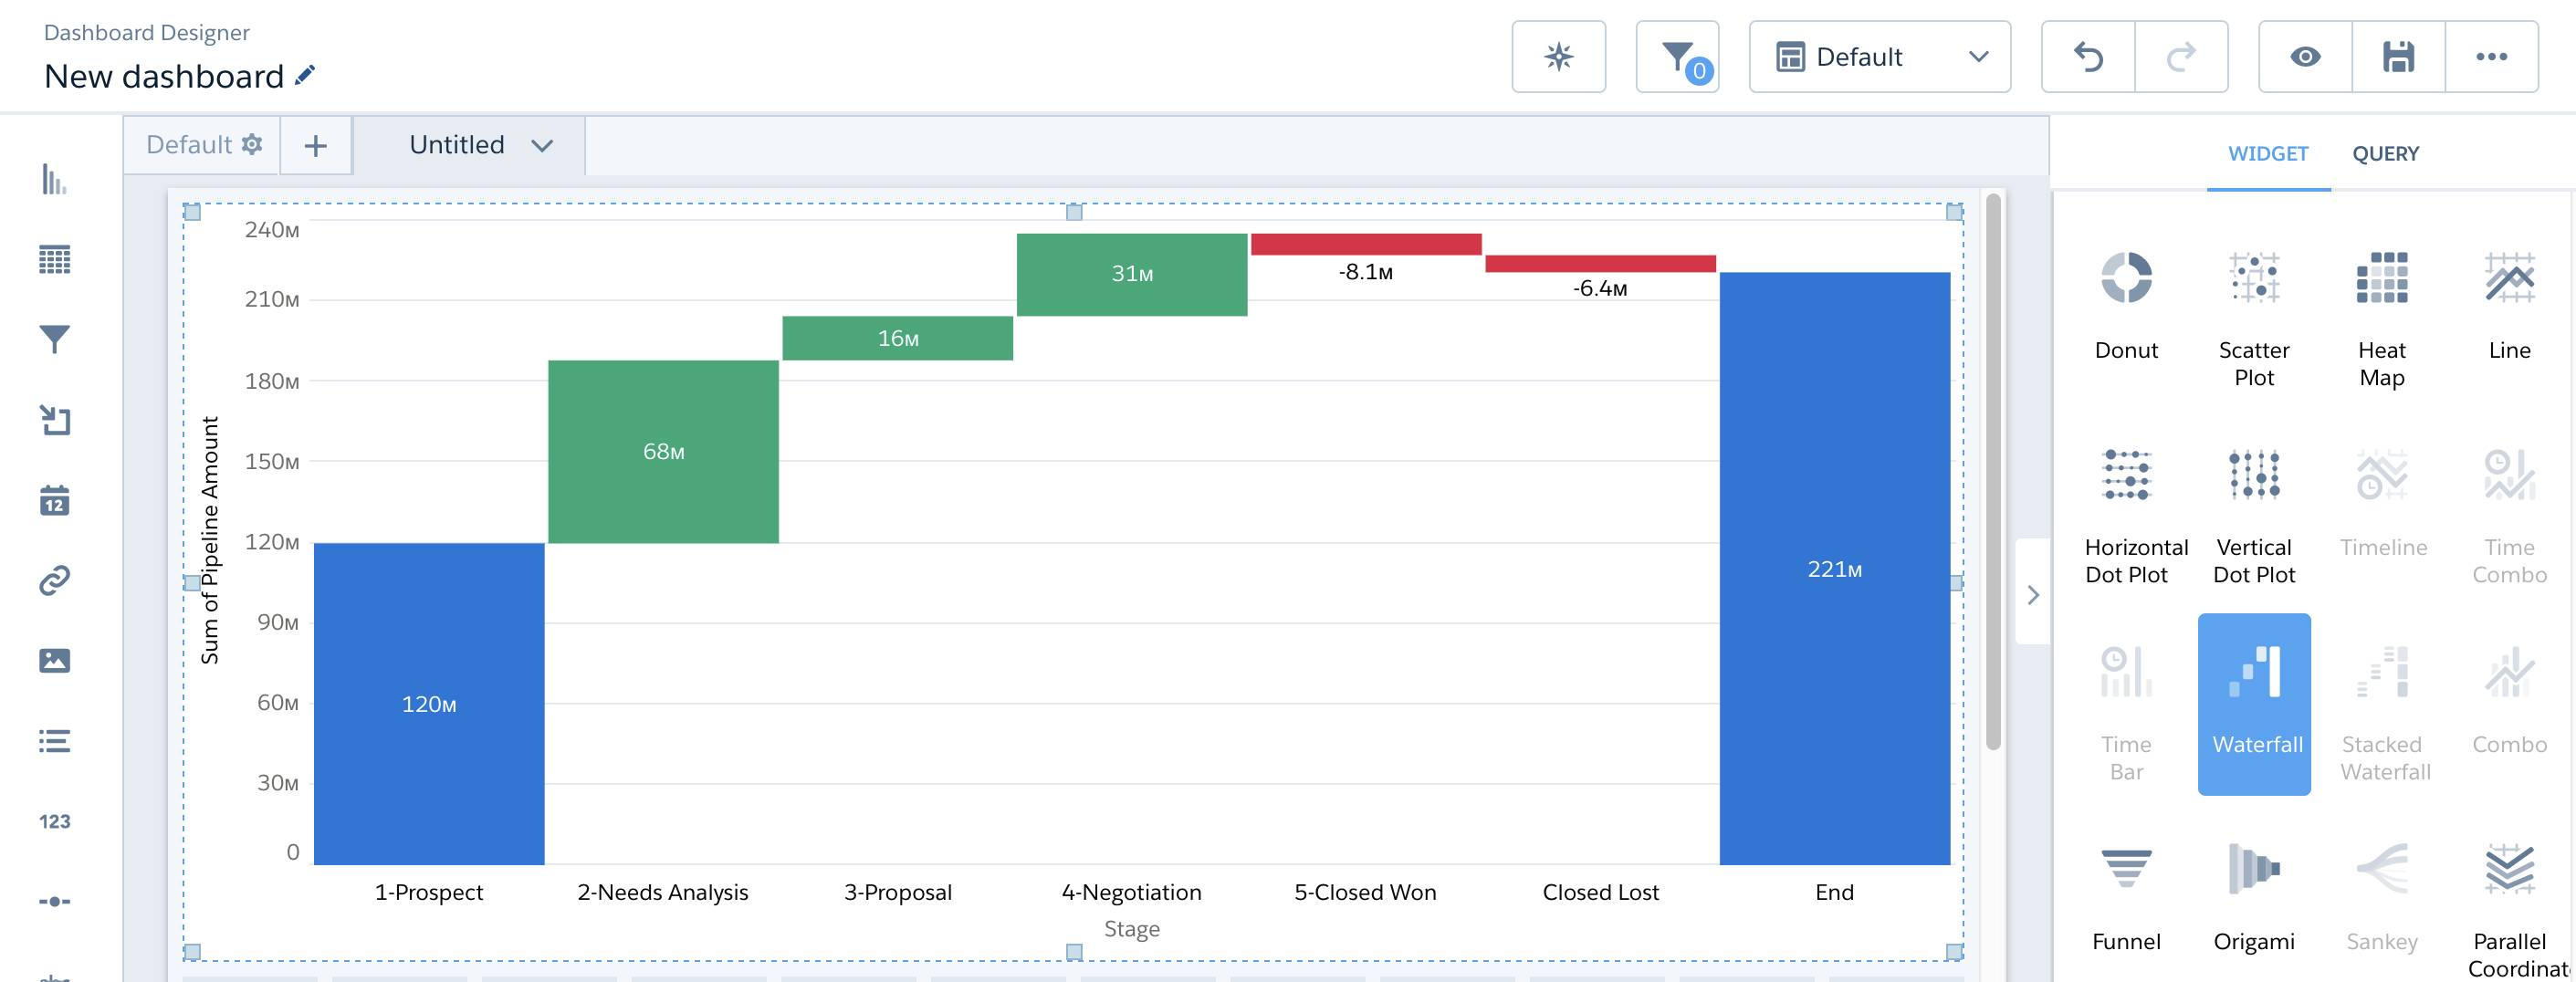 Pipeline stages waterfall chart in dashboard designer